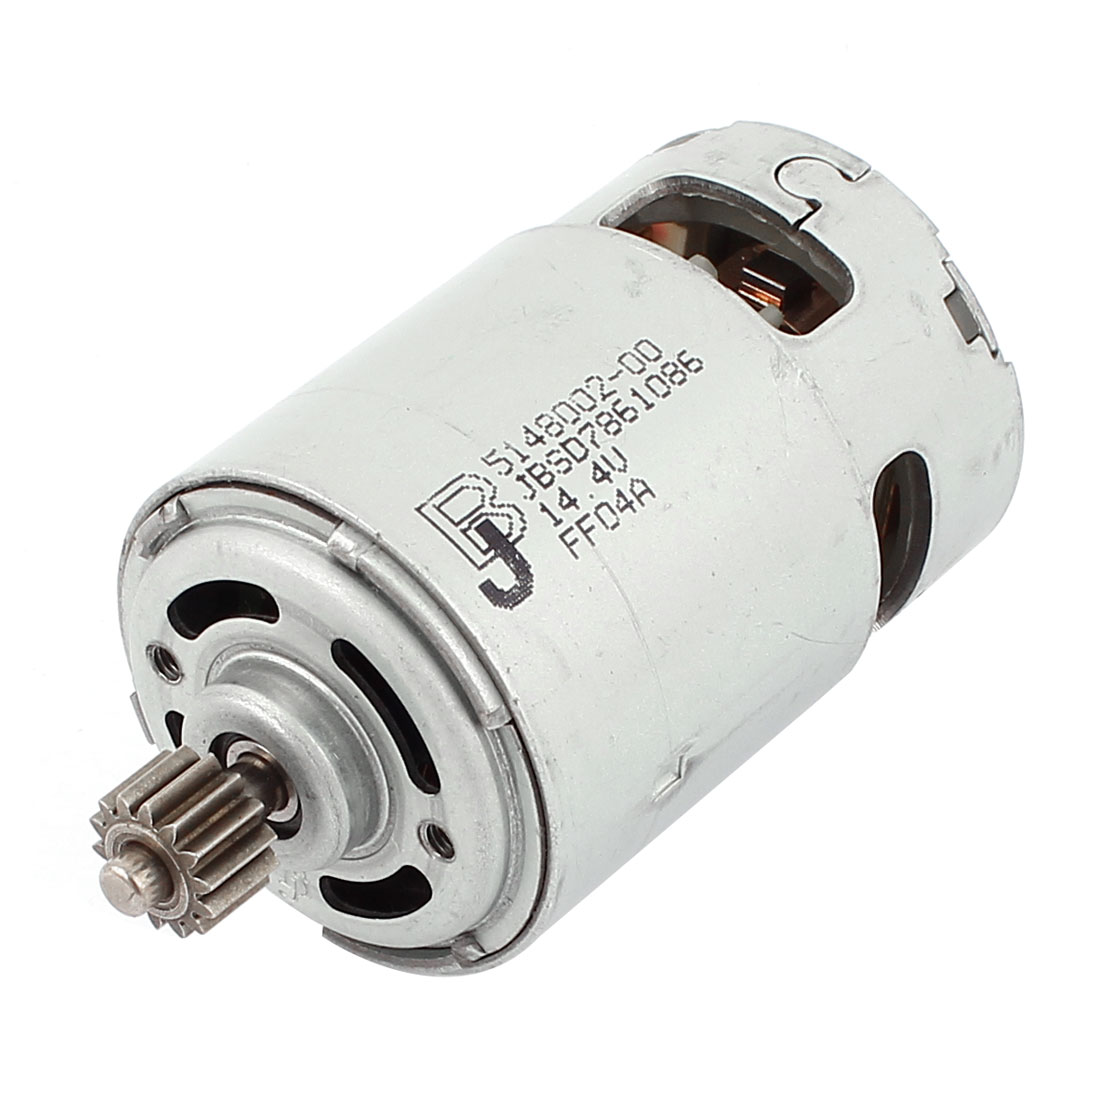 14.4V 16500RPM 5mm Dia Shaft 14 Tooth Cylinder 2 Pin Terminals Gear Motor